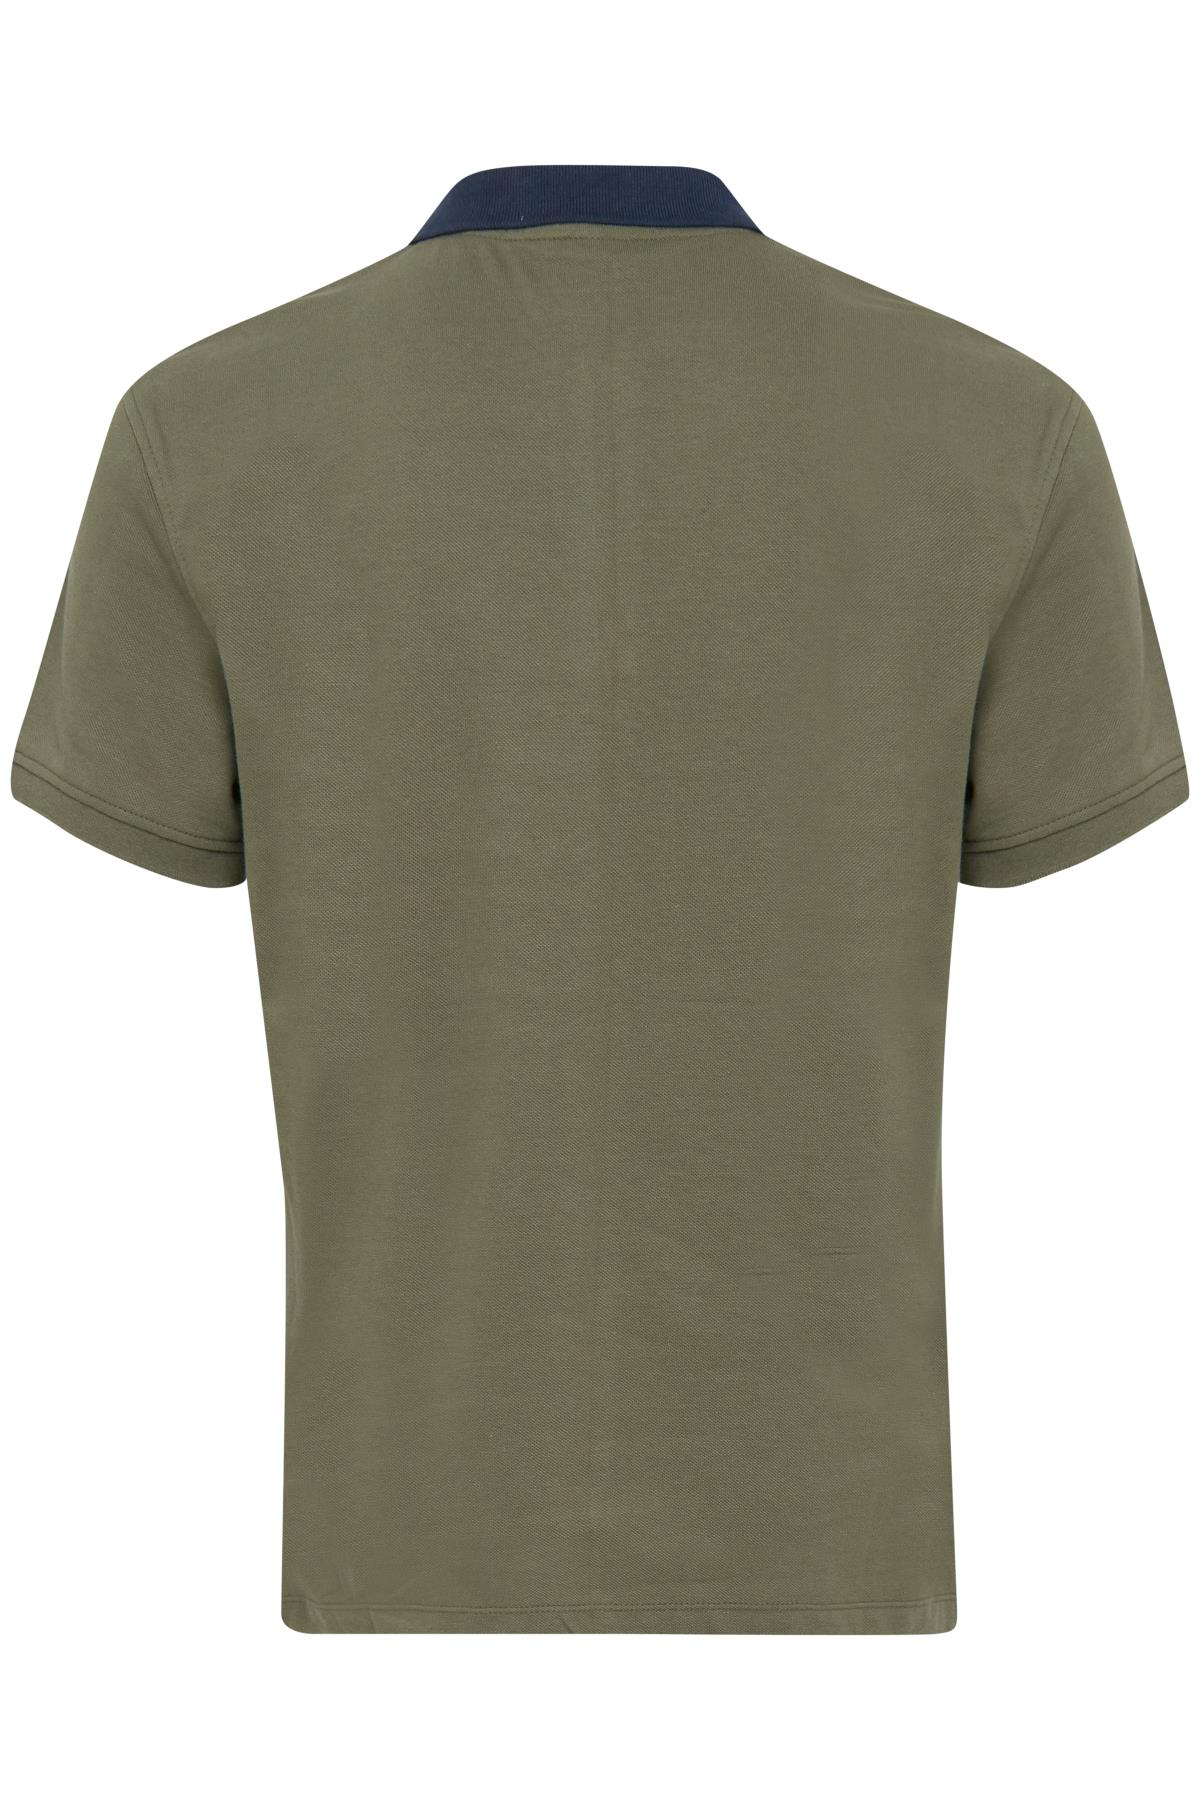 Dusty Olive Green Polo-shirt – Køb Dusty Olive Green Polo-shirt fra str. S-3XL her